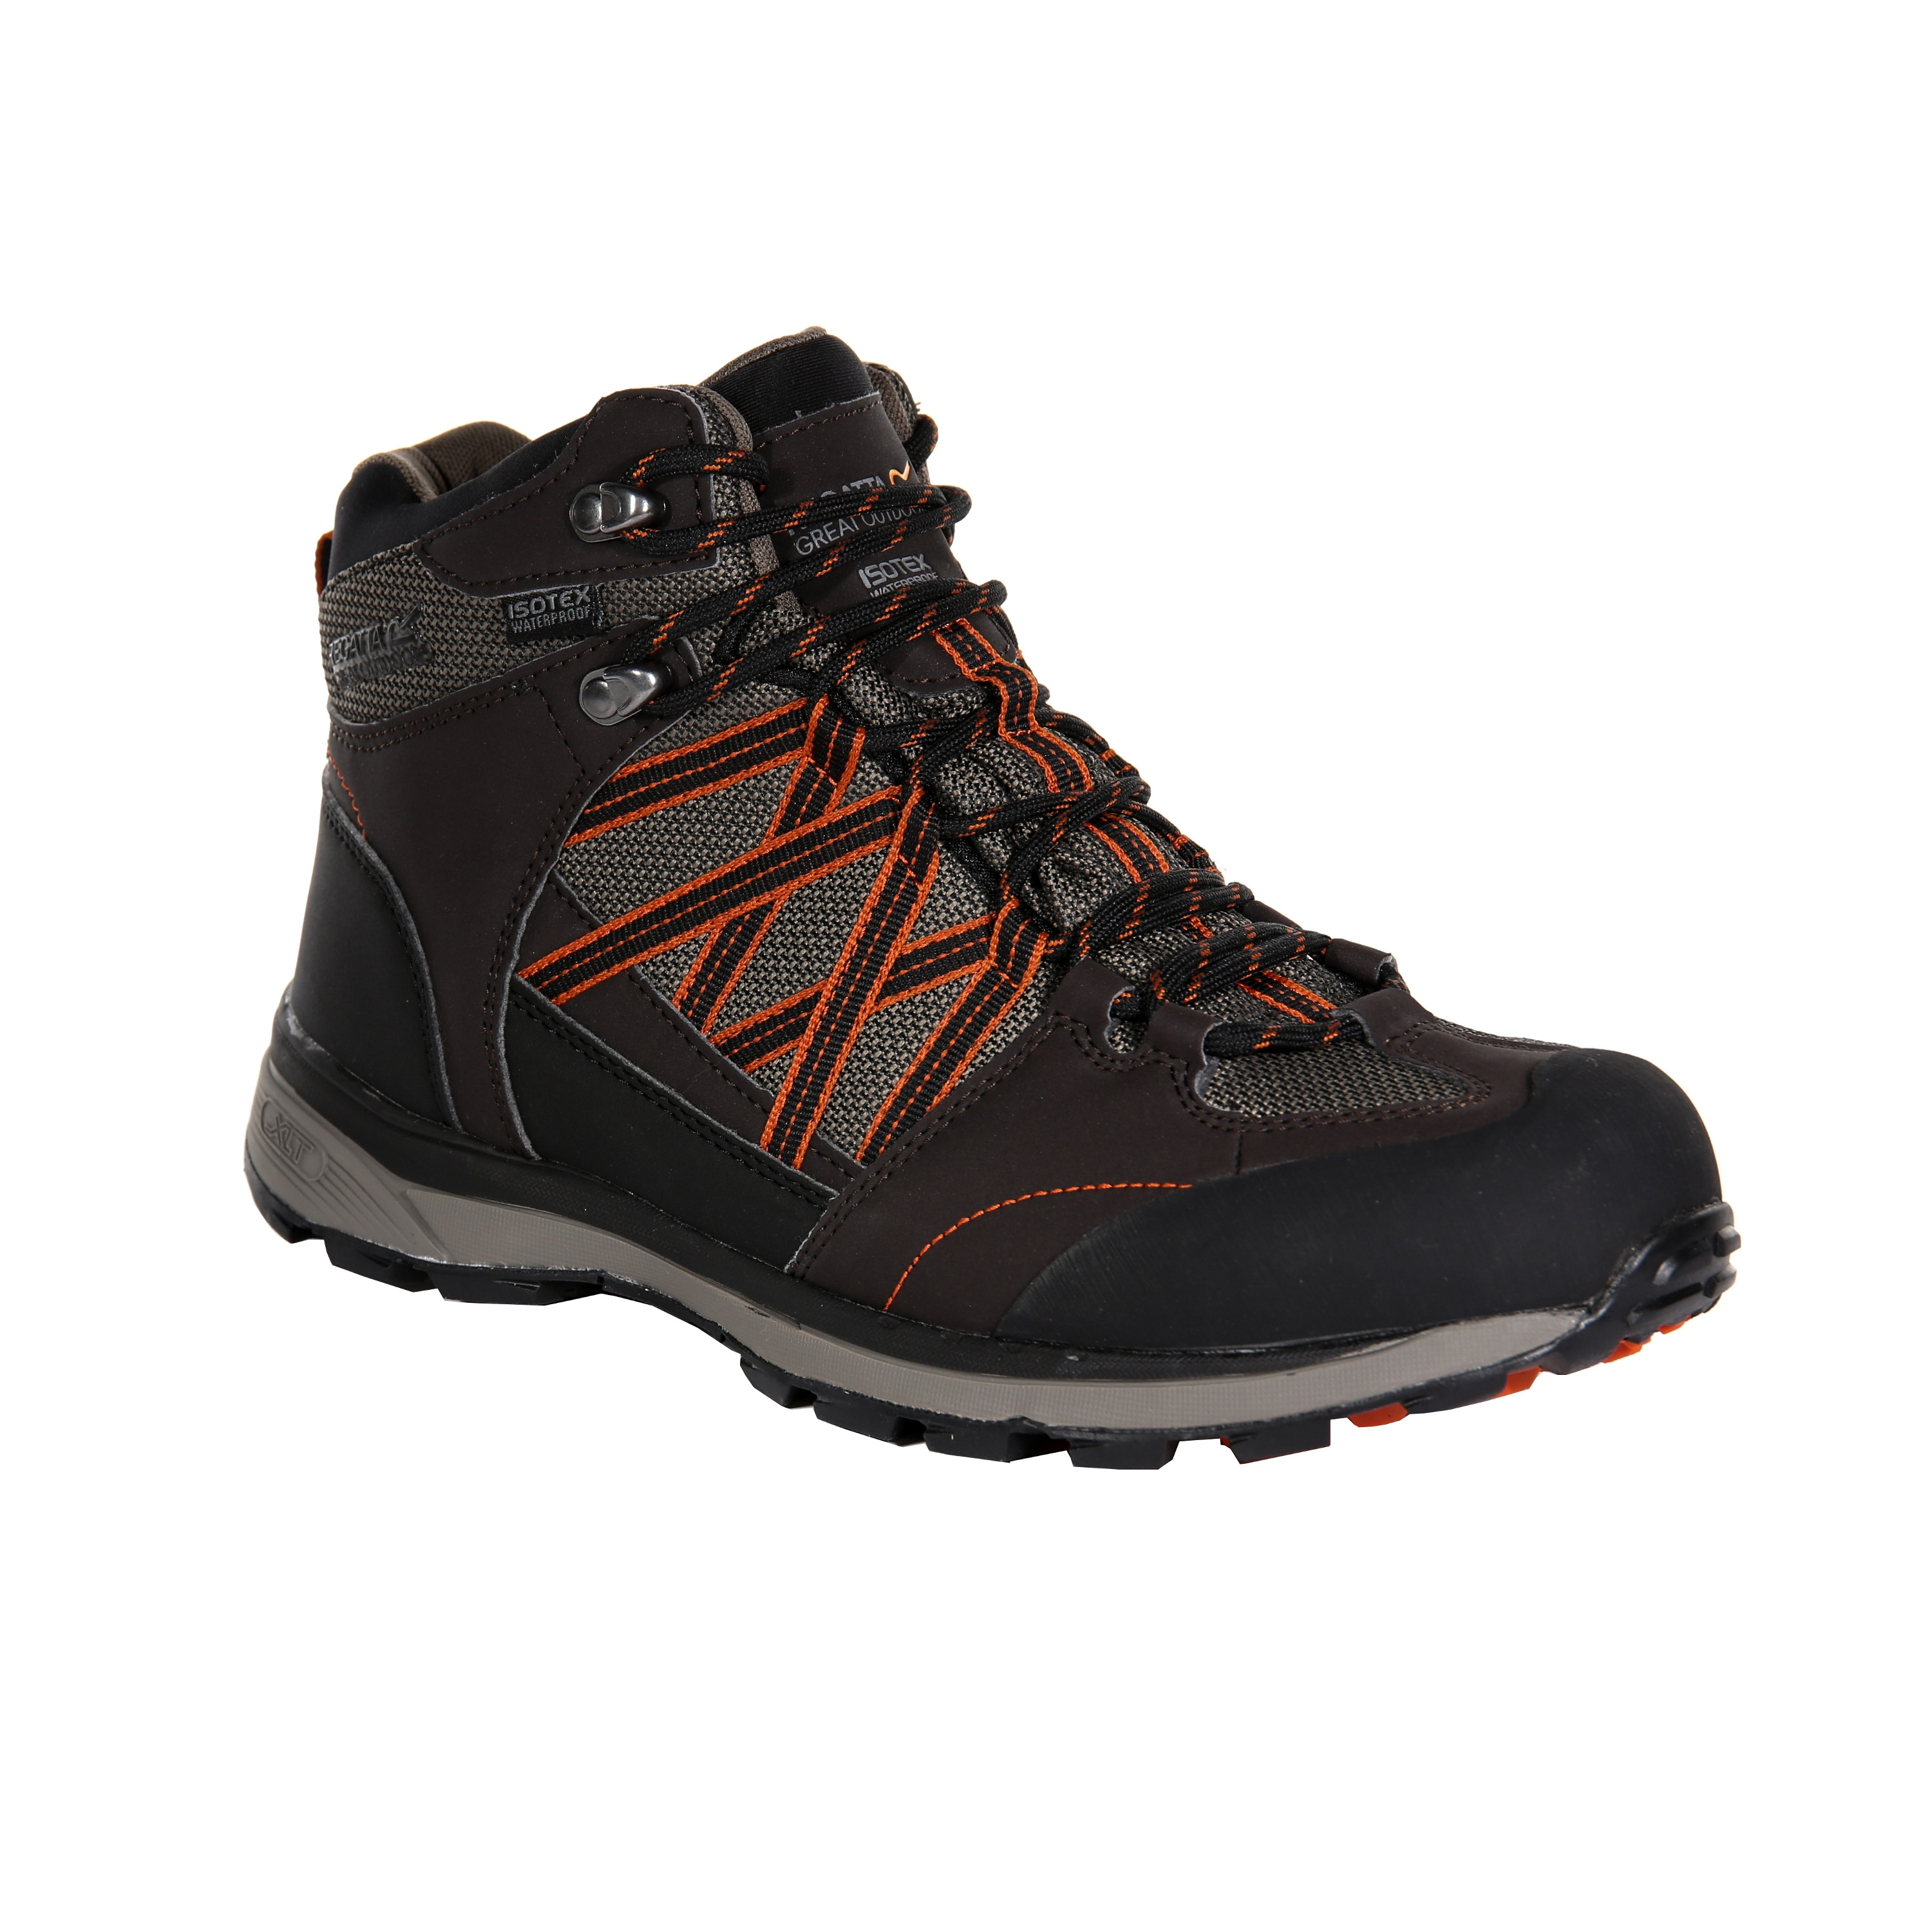 0534dafeb6b Men's Footwear   Country Boots & Wellies, Riding Boots